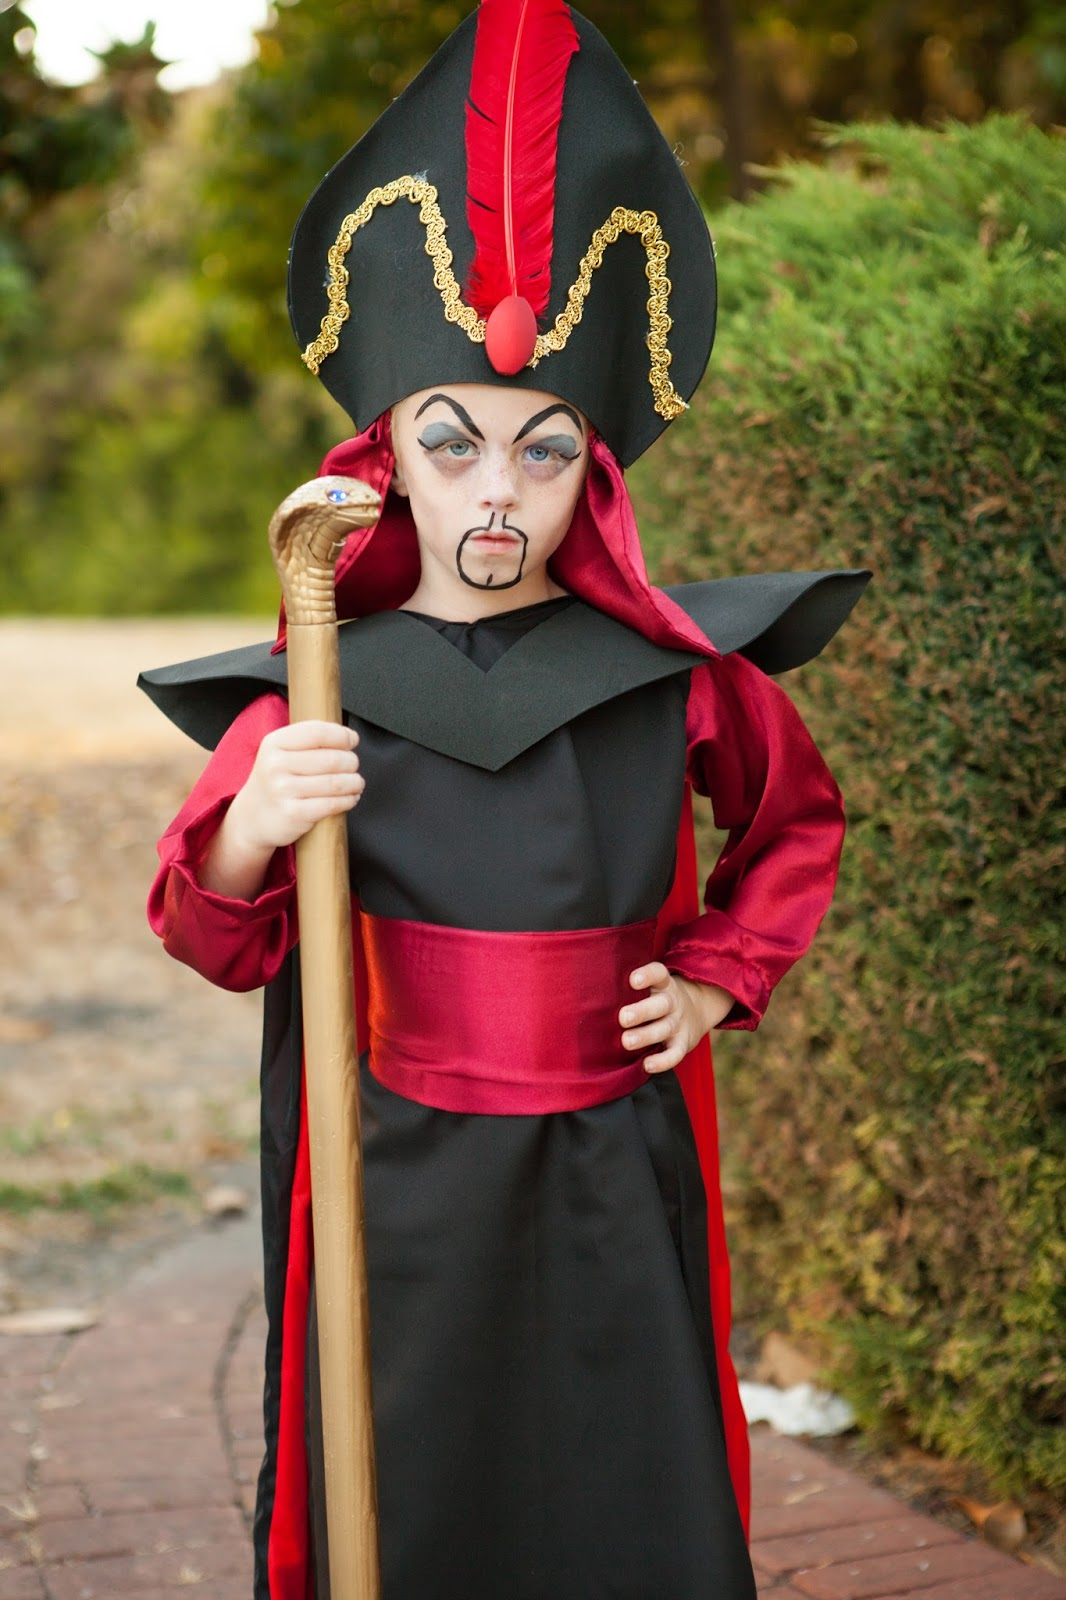 Halloween Costumes For Kids 9 Years Old